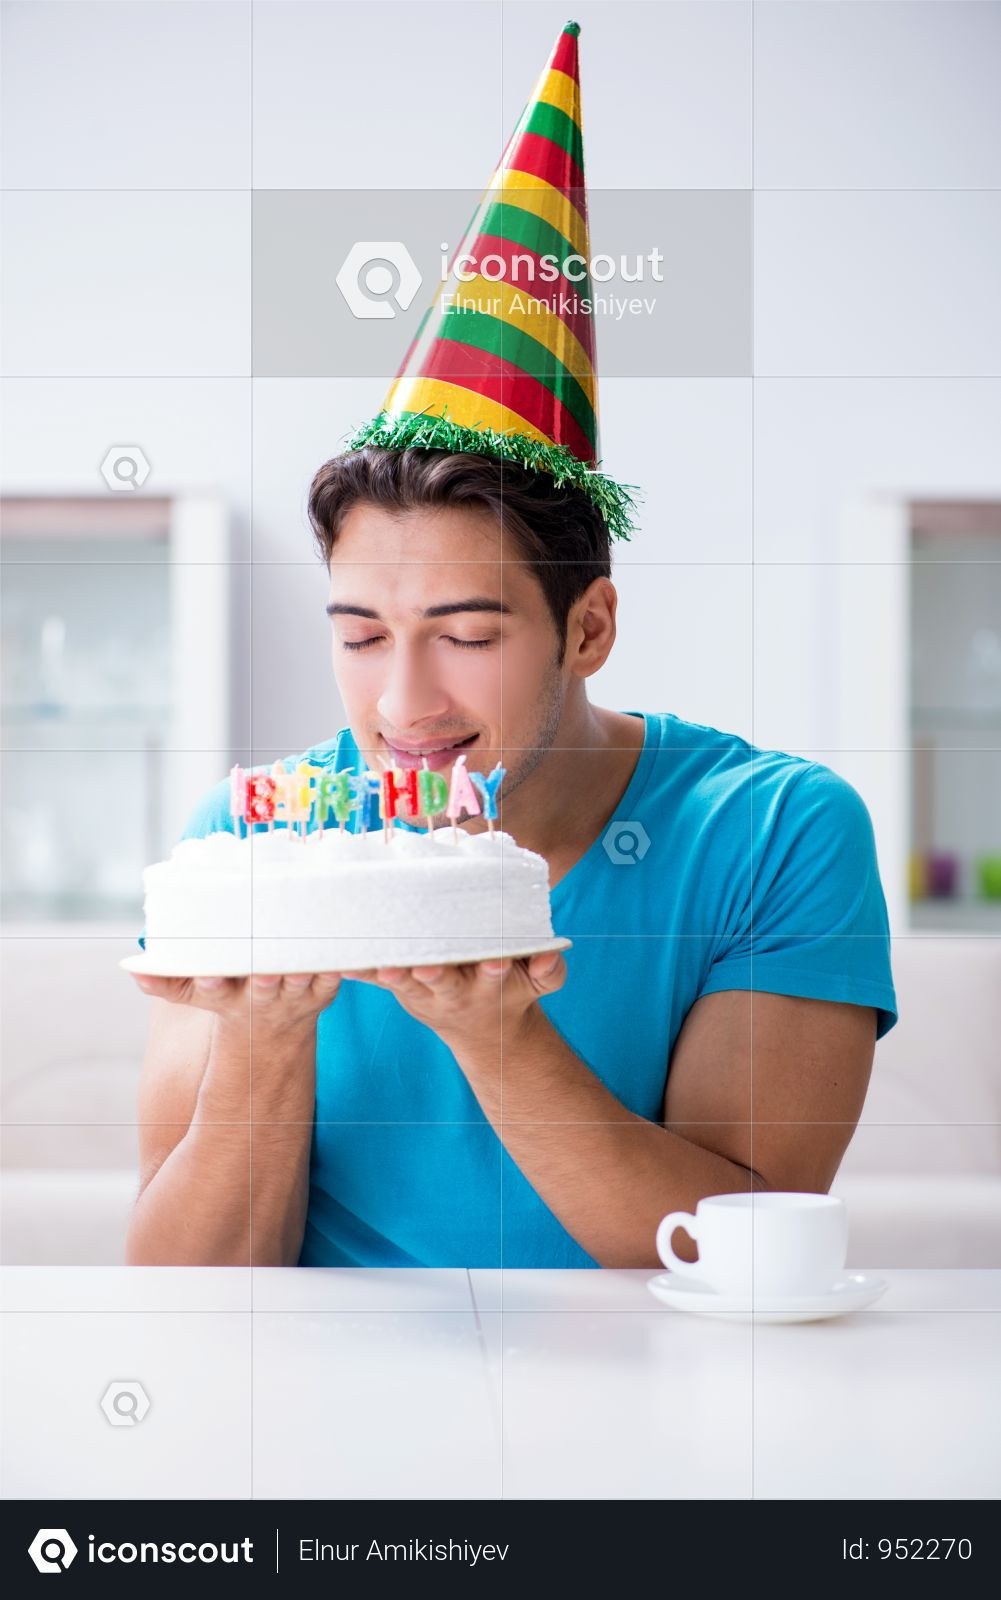 Premium Young Man Celebrating Birthday Alone At Home Photo Download In Png Jpg Format Home Photo Home Alone Young Man